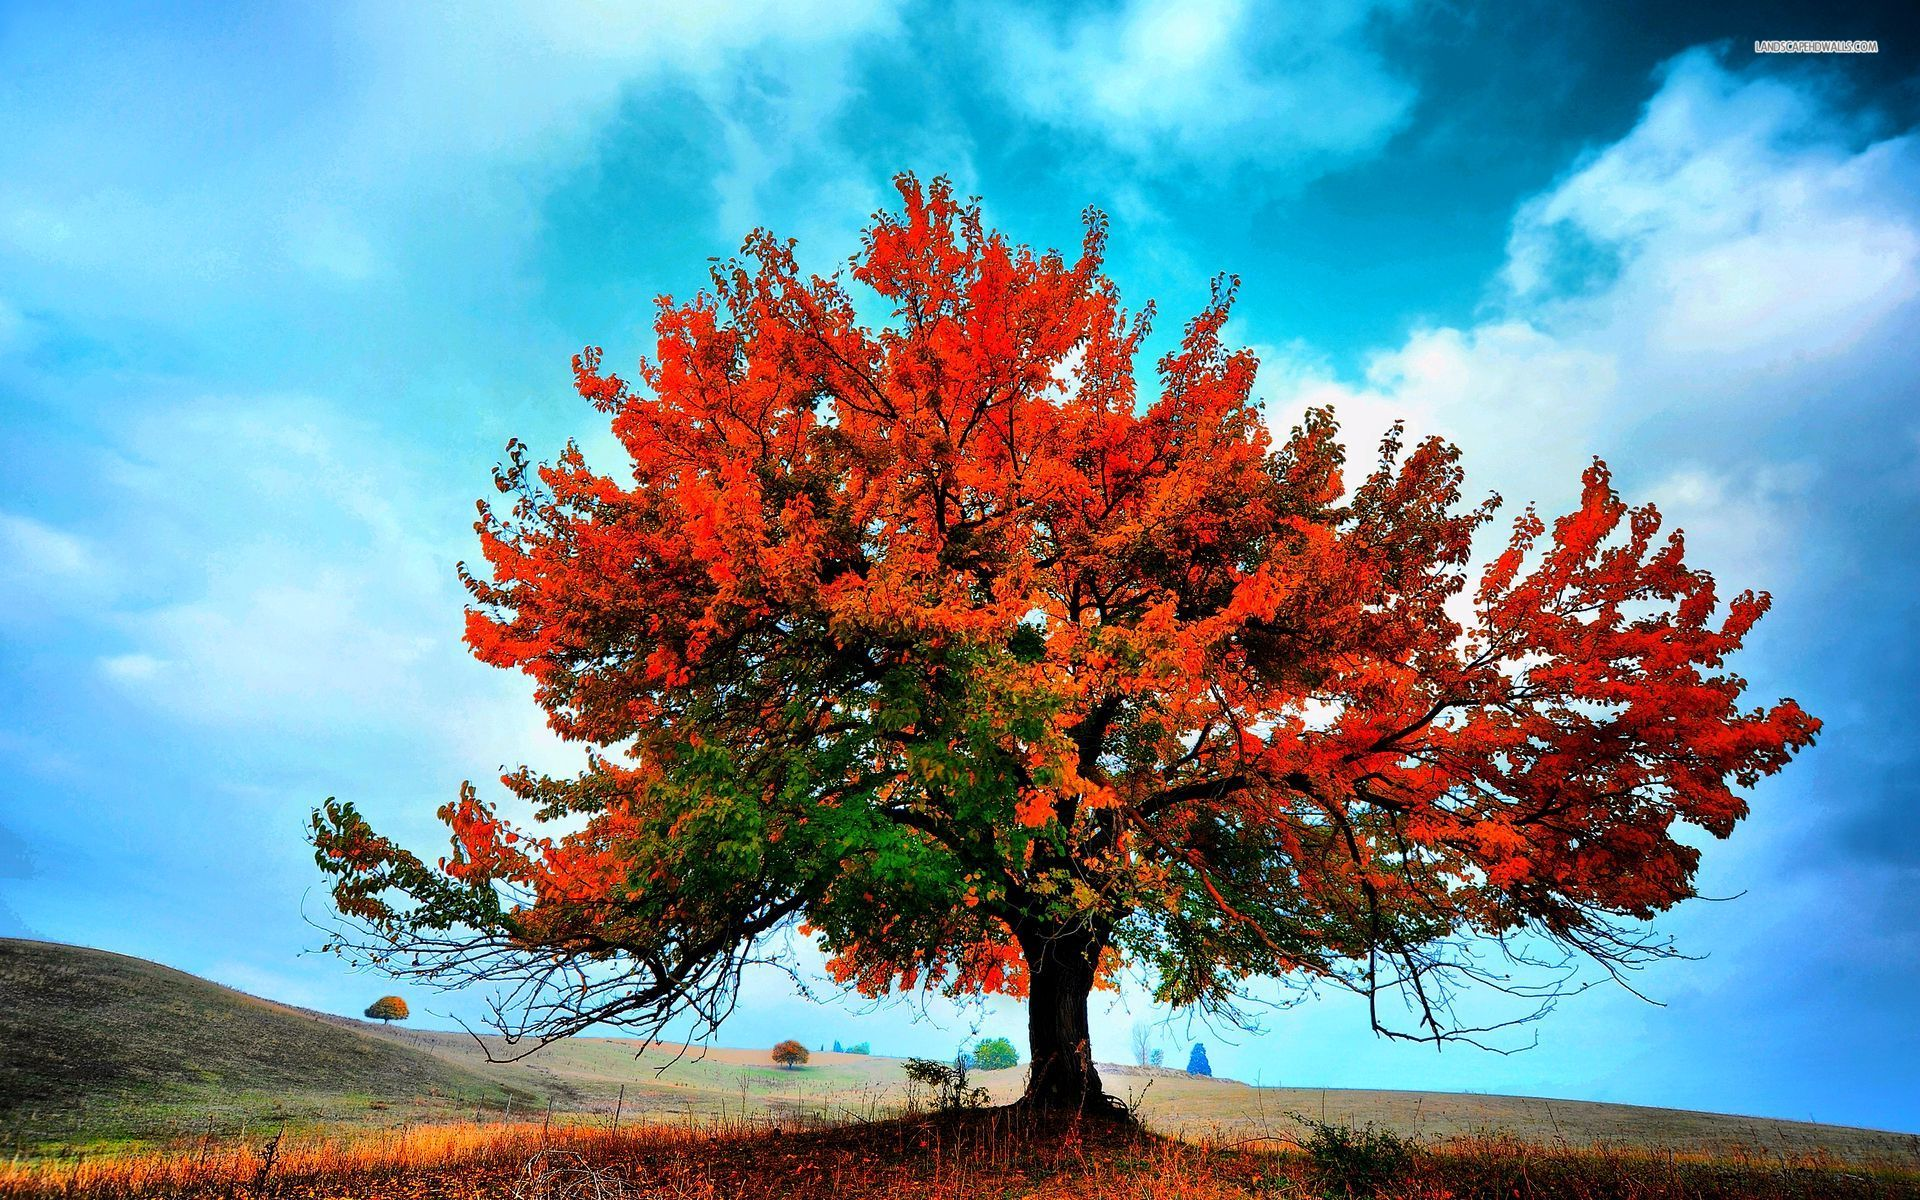 Pretty Fall Iphone Wallpapers 193 Rbol Rojo Hermoso Oto 241 O Fondos De Pantalla 193 Rbol Rojo